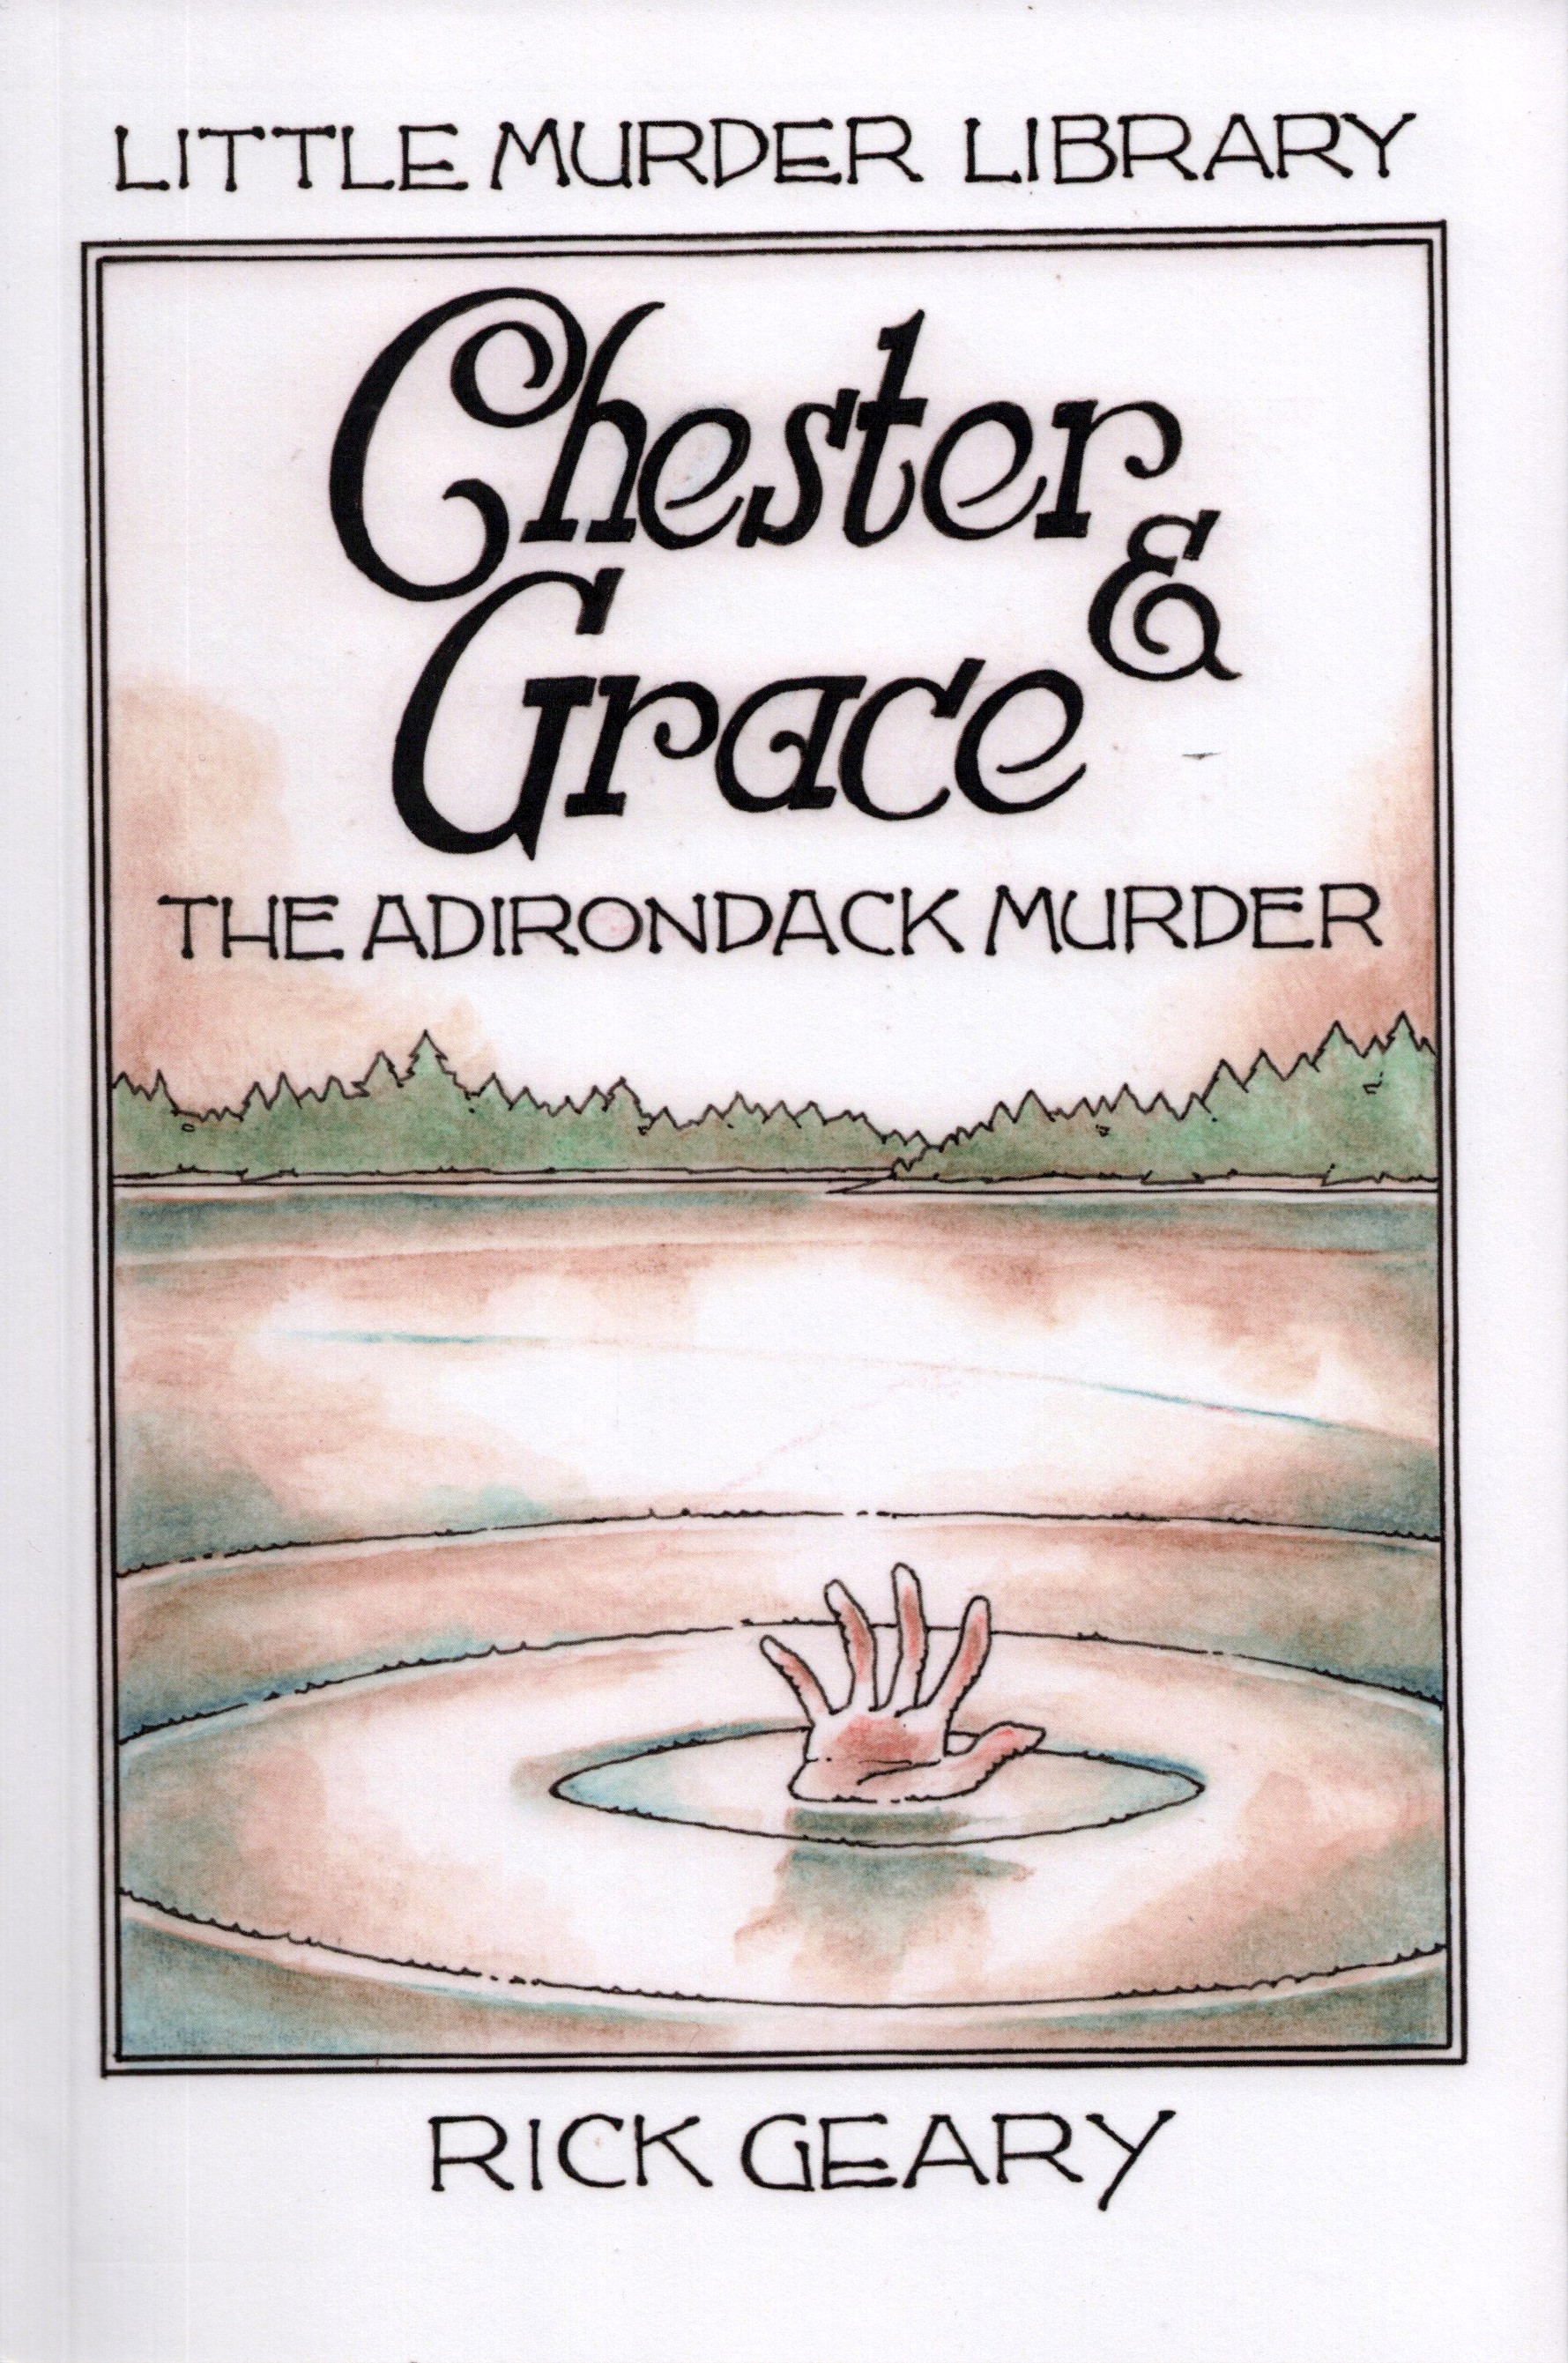 chester & grace - the adirondack murder - cover